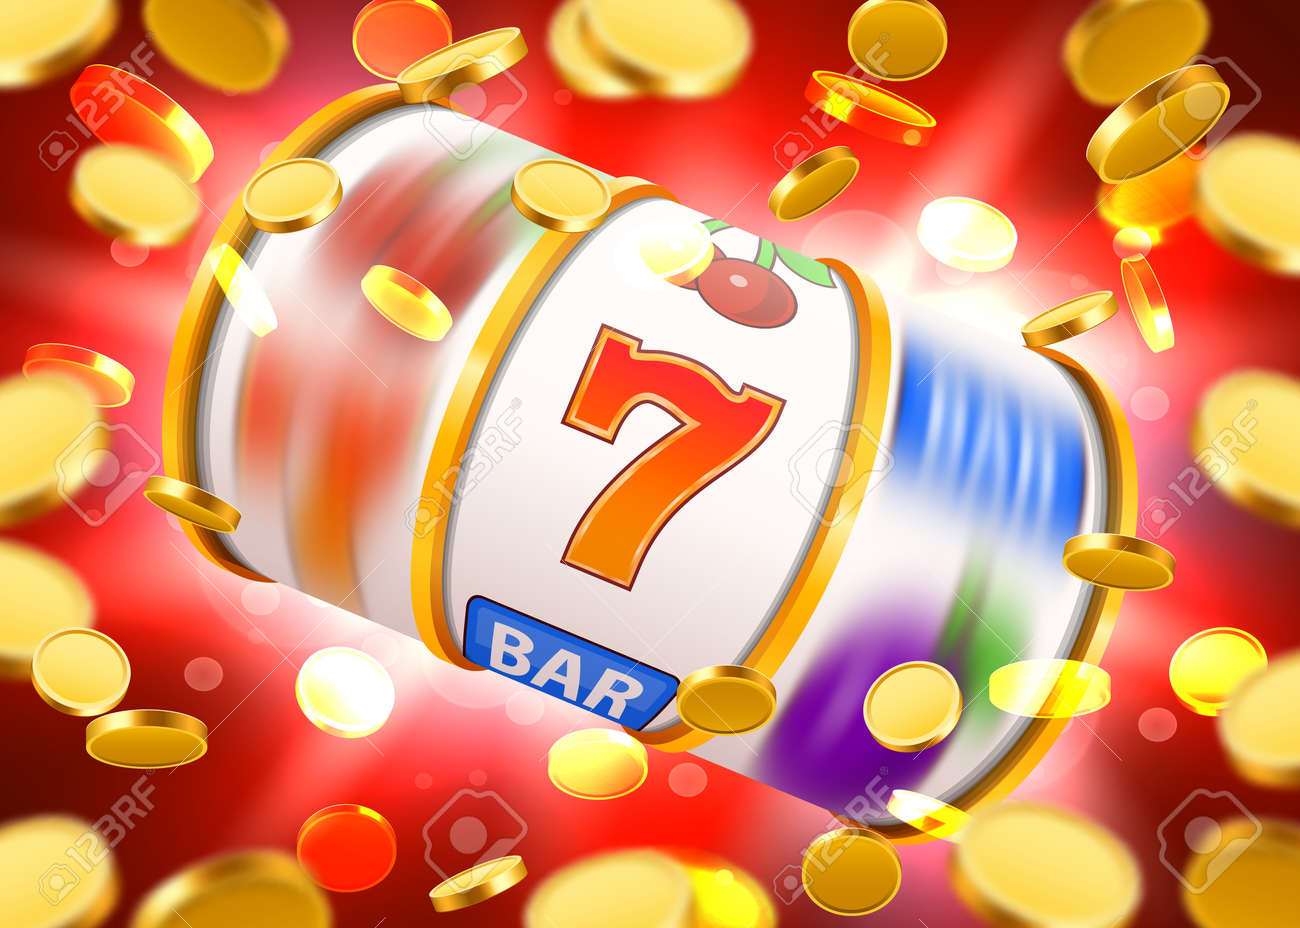 Golden slot machine with flying golden coins wins the jackpot. Big win concept. - 85713640